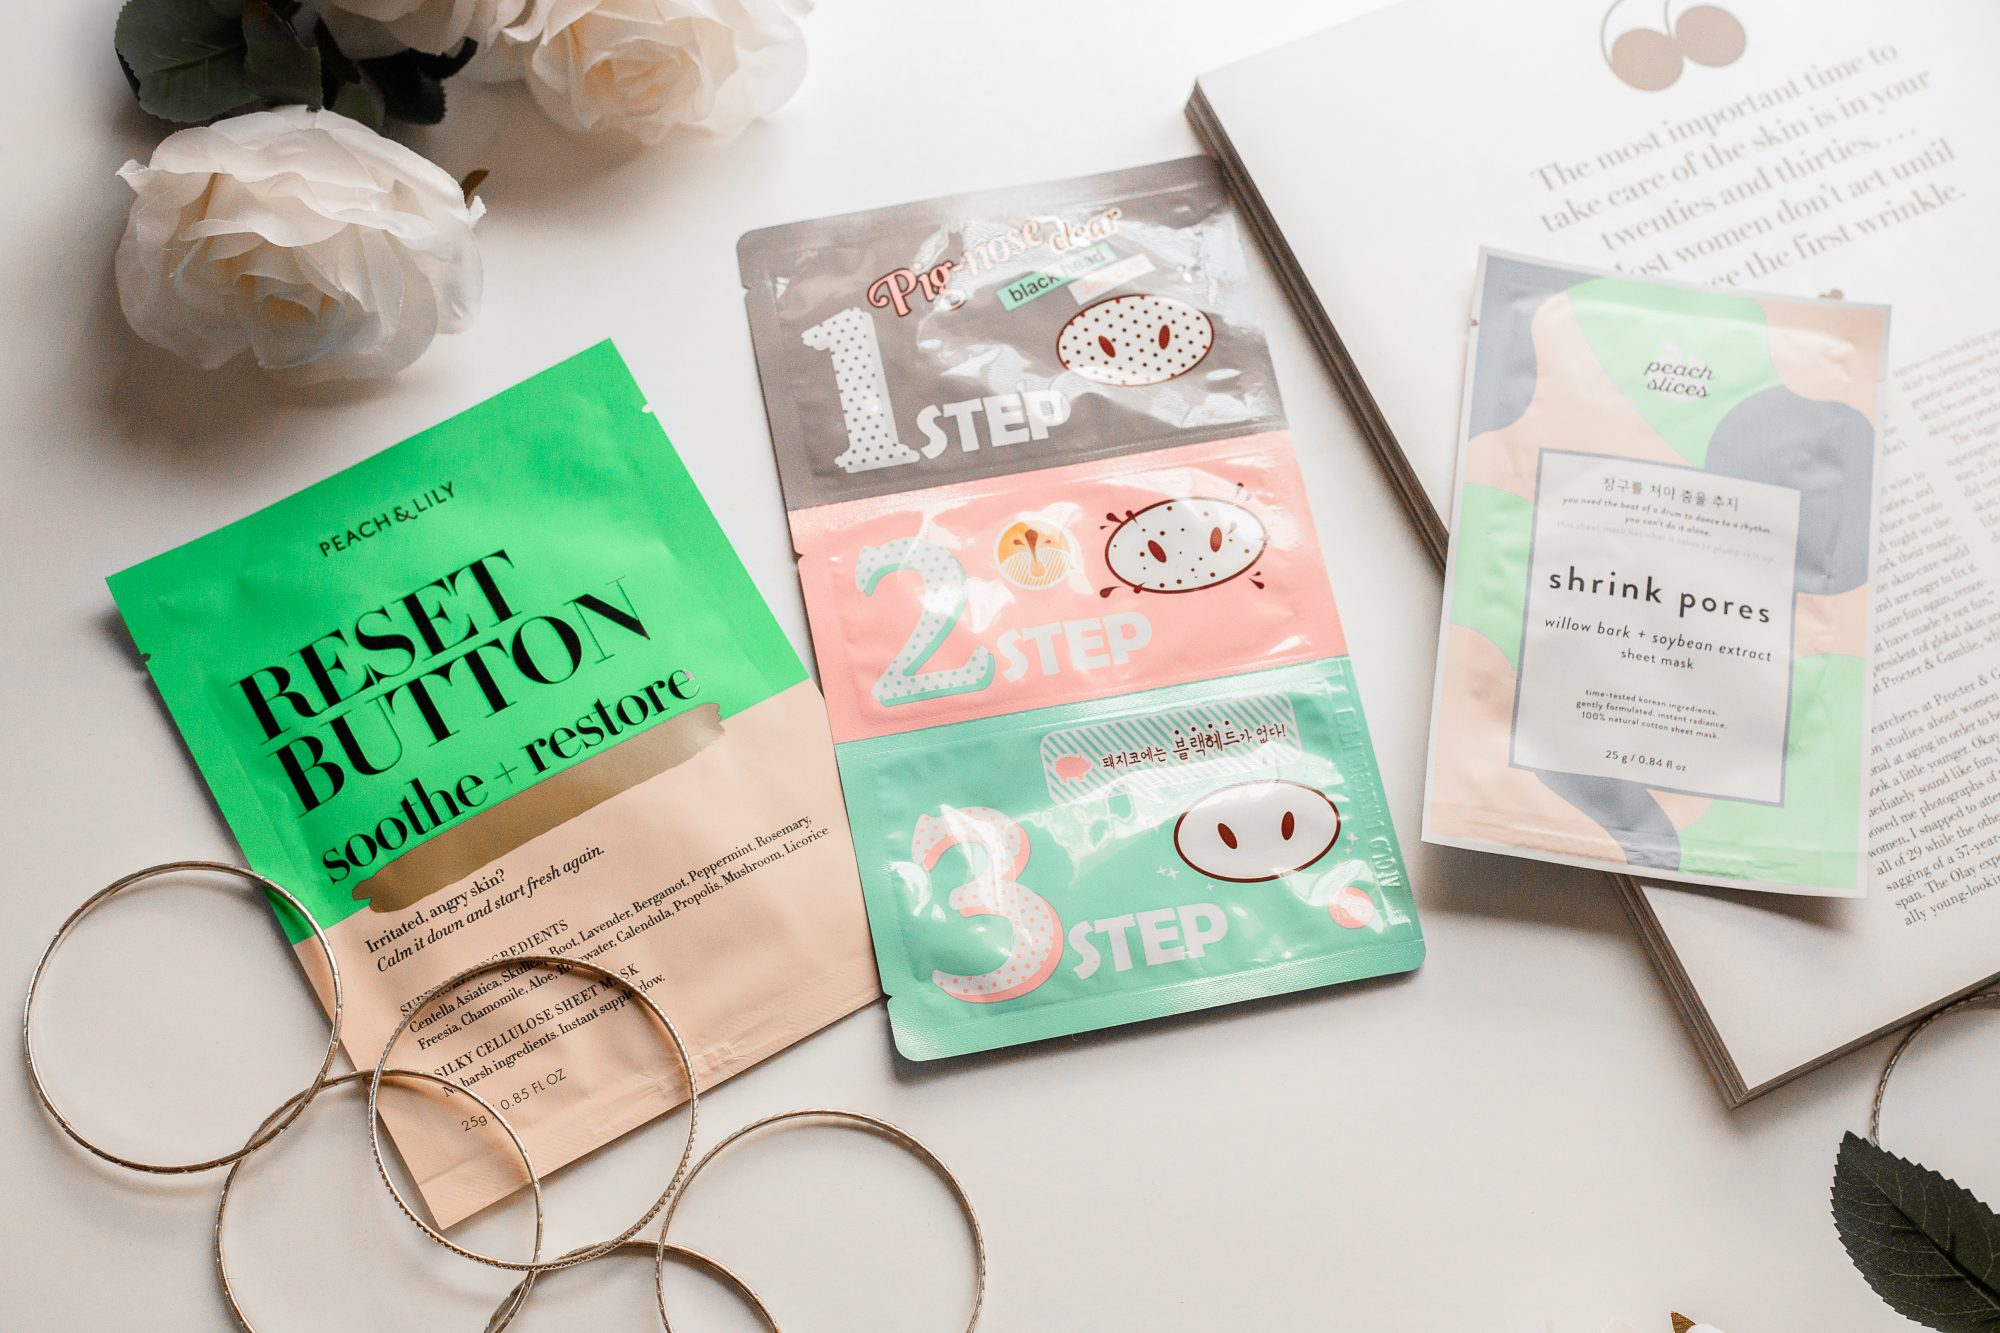 Peach & Lily has their own line of sheet masks, and after seeing amazing results with the Reset Button Soothe + Restore Sheet Mask ($6) I've been convinced to try out their other masks. This formula wasn't sticky at all and absorbed into my skin without leaving a greasy residue. It's wonderful for sensitive gals like me with oily skin! You can grab all 3 Peach & Lily sheet masks for $15. - www.theballeronabudget.com